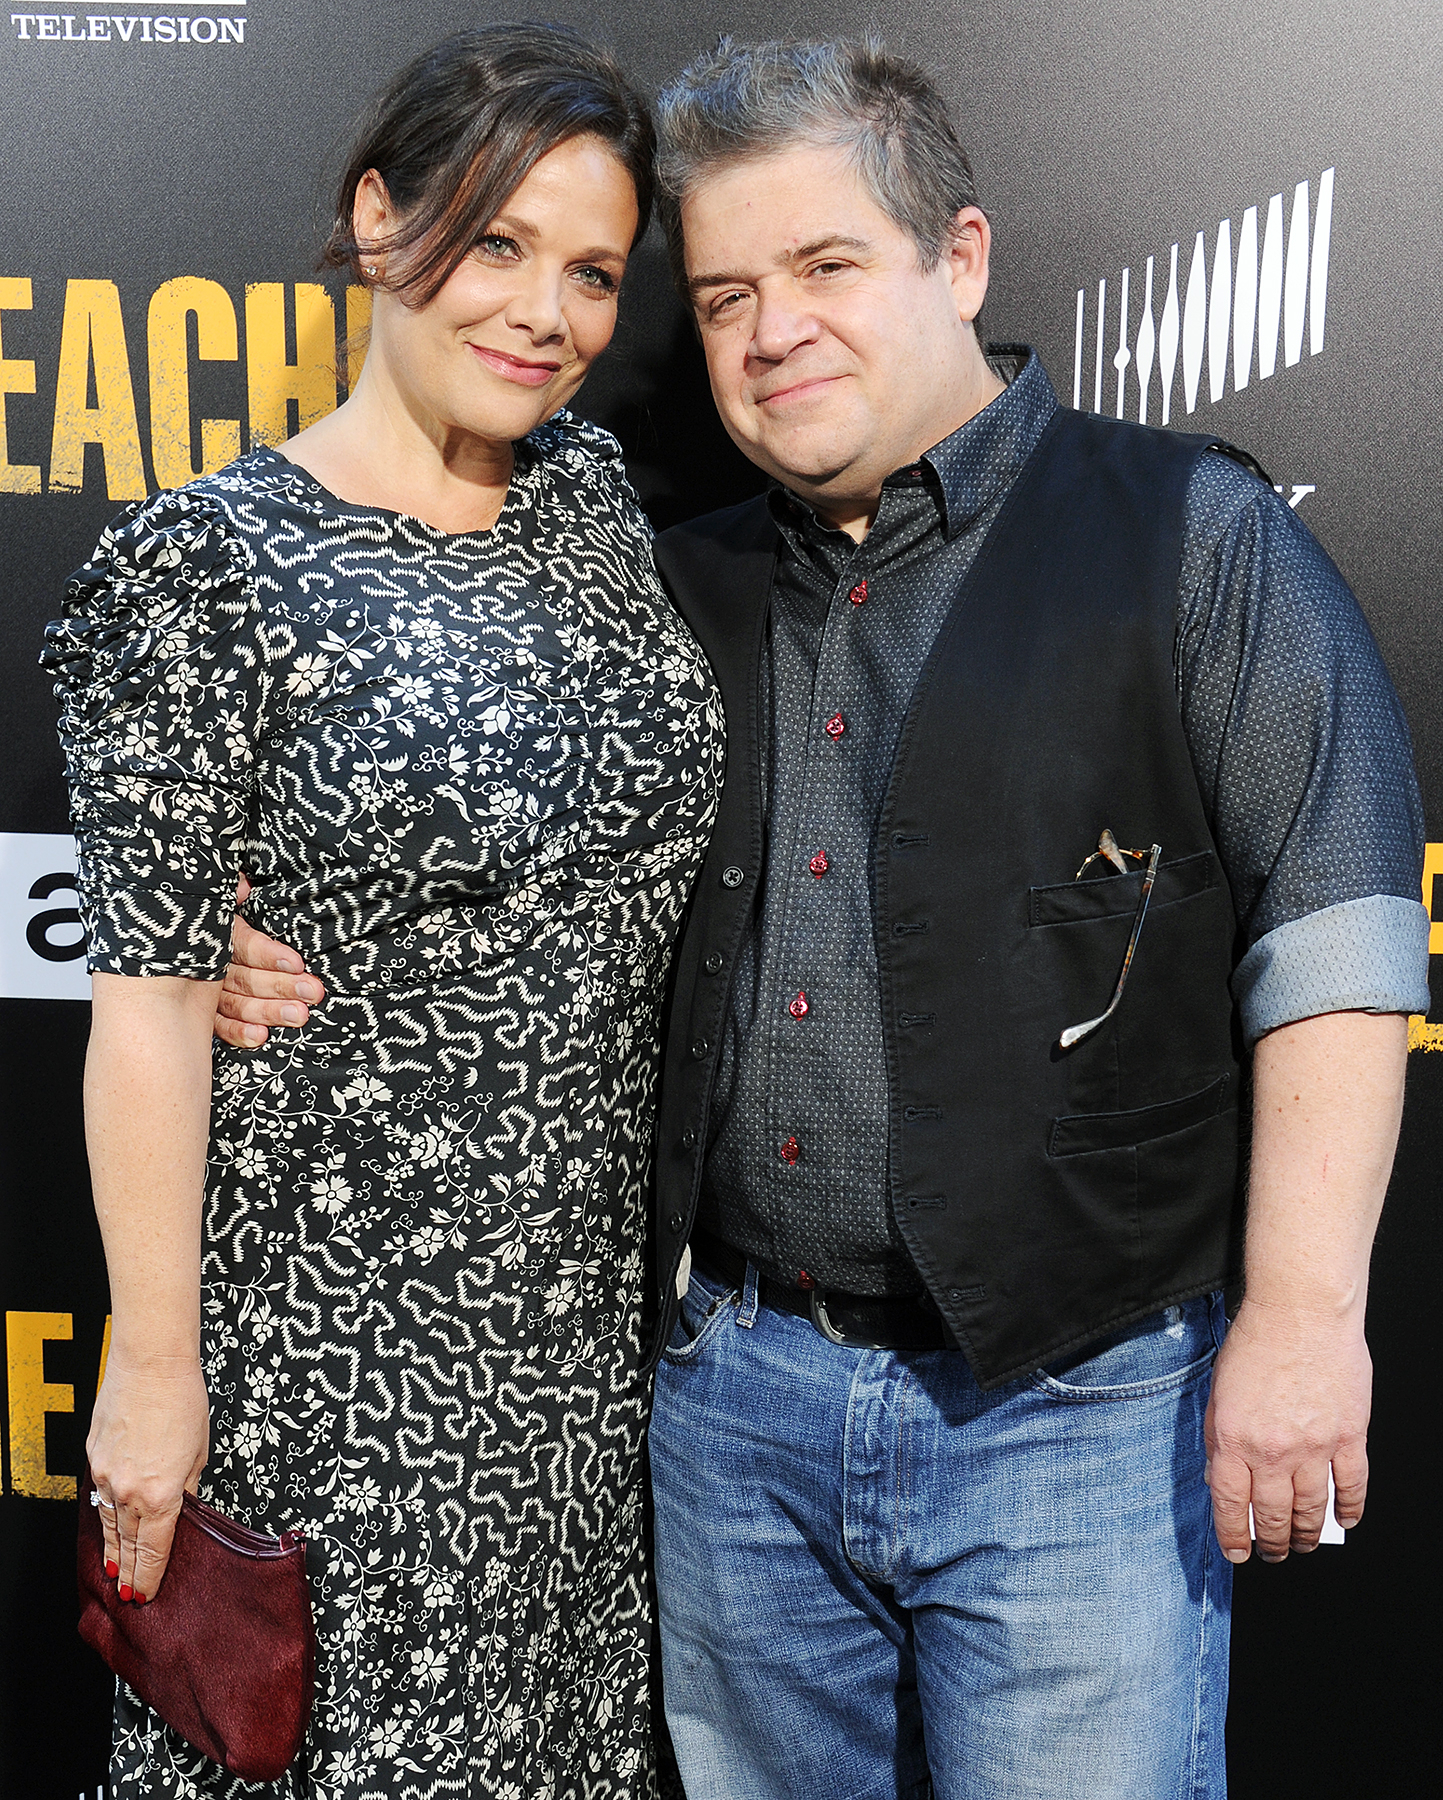 Patton Oswalt Is Engaged To Actress Meredith Salenger